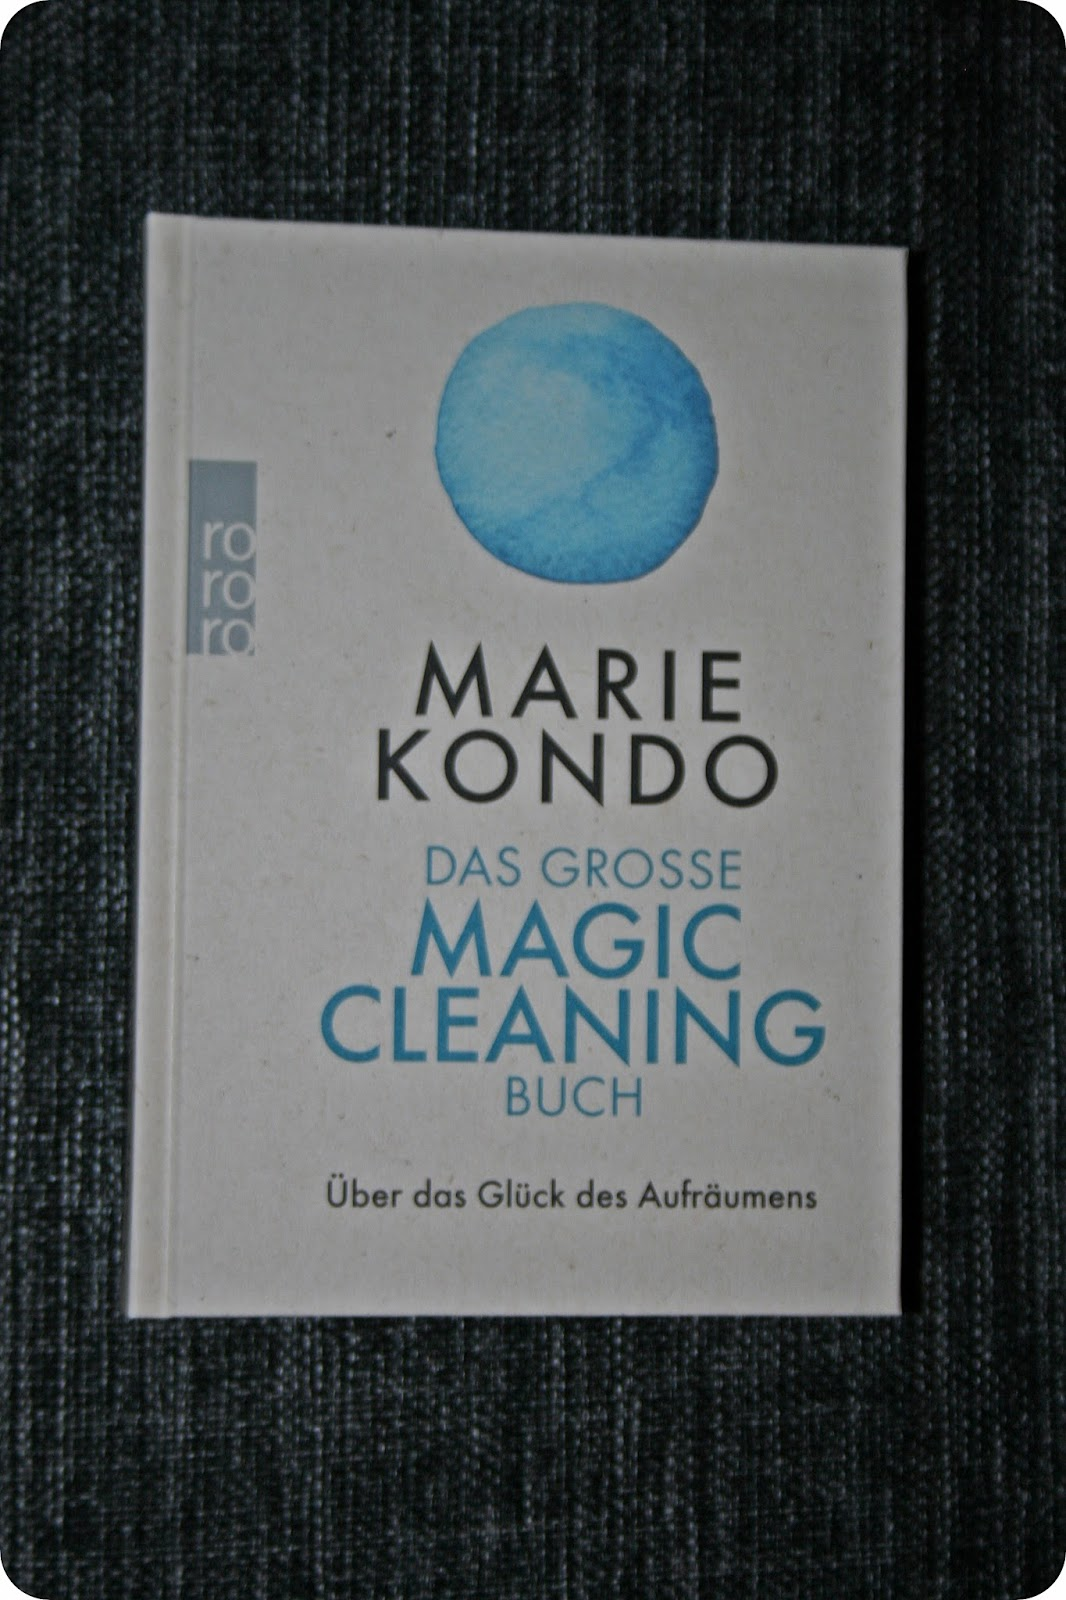 rezension das gro e magic cleaning buch von marie kondo. Black Bedroom Furniture Sets. Home Design Ideas